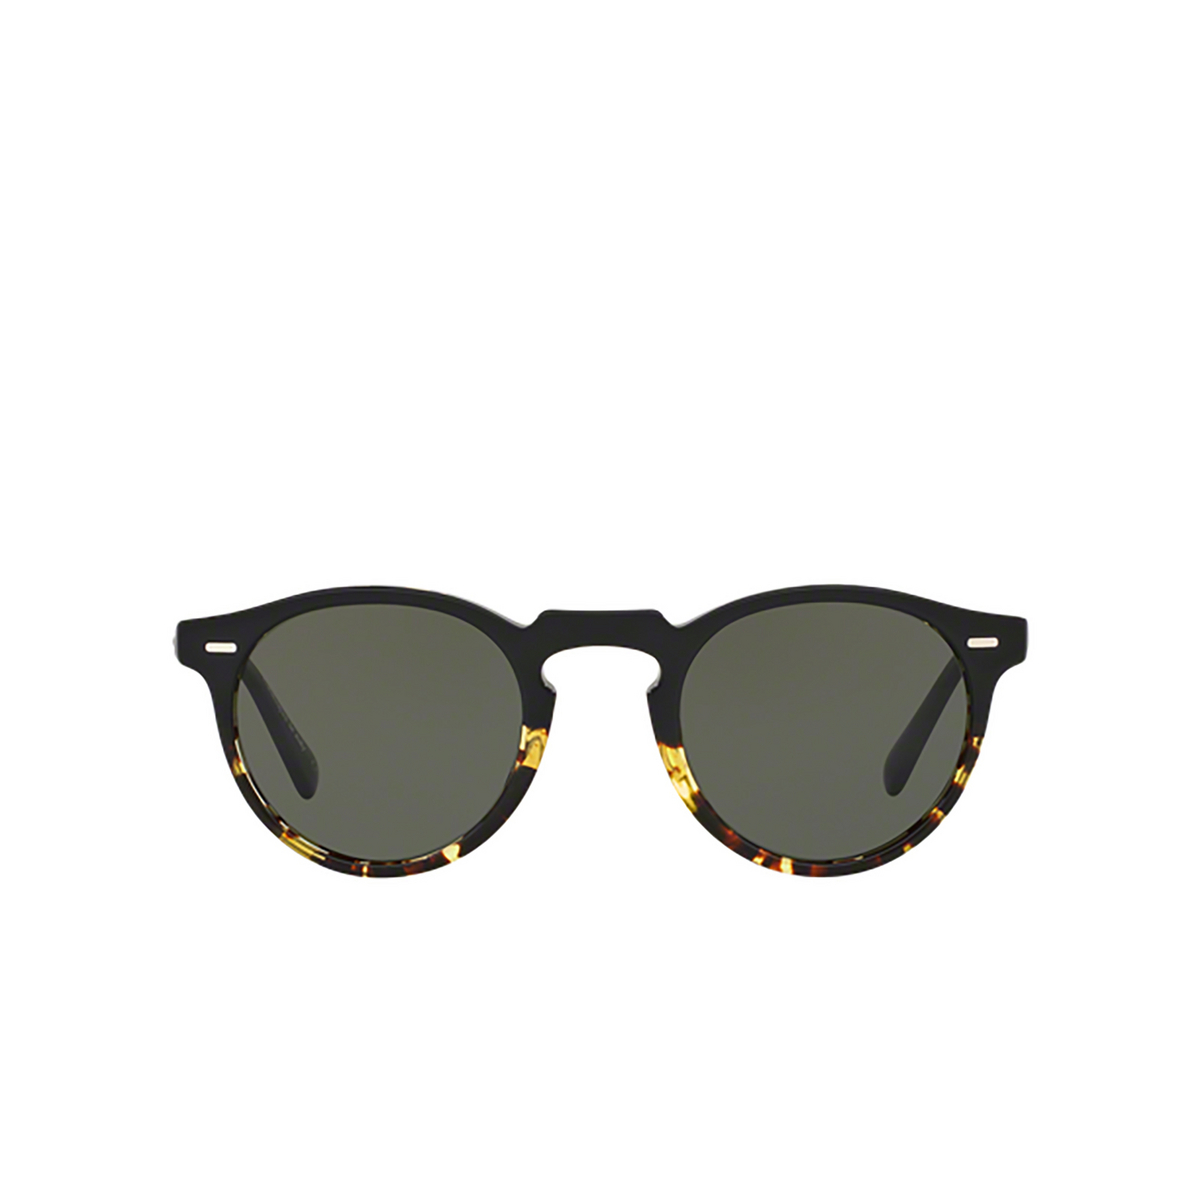 Oliver Peoples® Round Sunglasses: Gregory Peck Sun OV5217S color Black / Dtbk Gradient 1178P1 - front view.